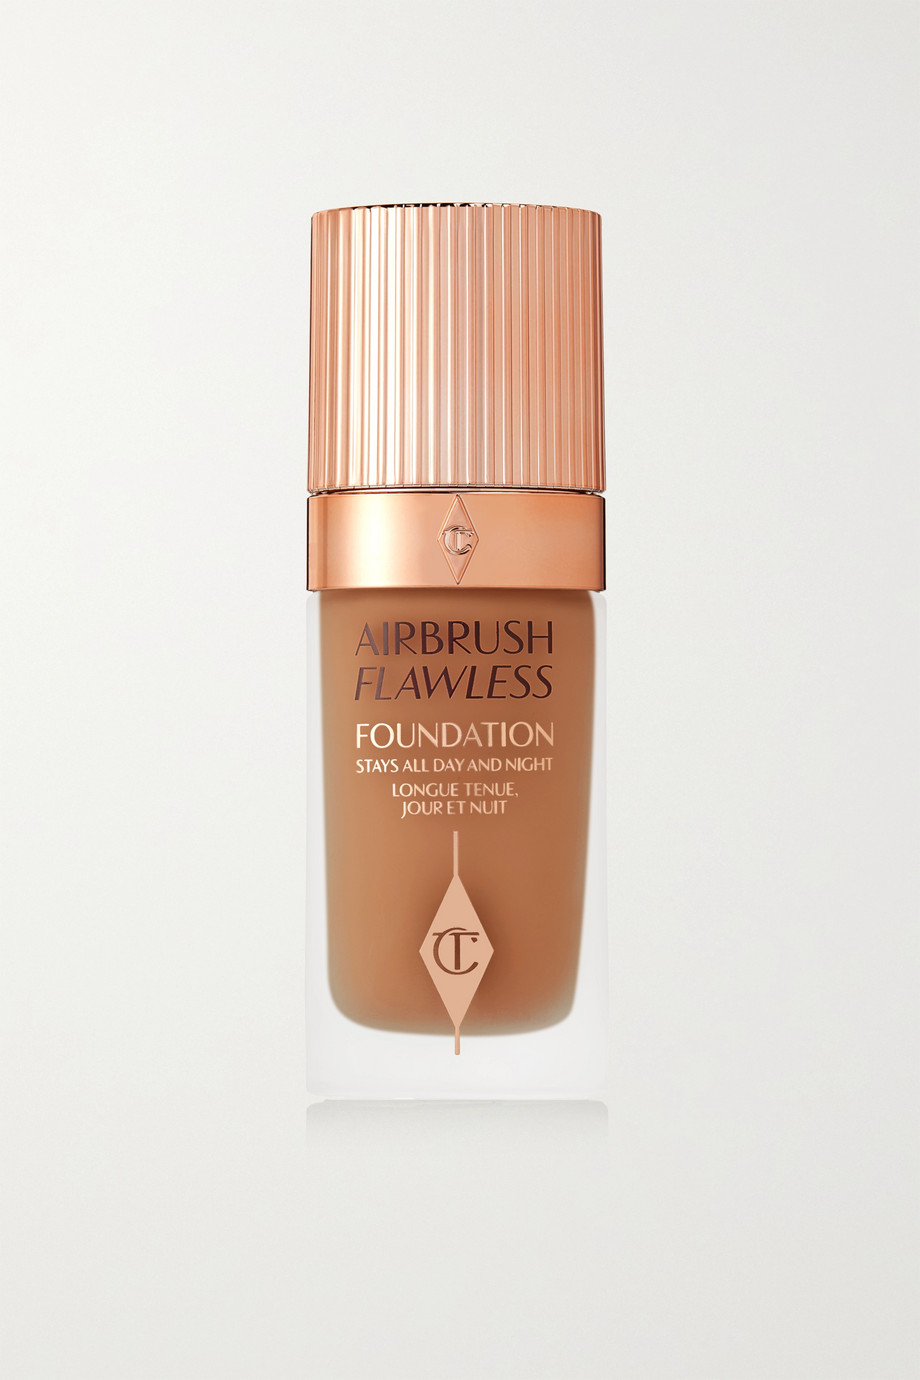 Charlotte Tilbury Airbrush Flawless Foundation - 9 Cool, 30ml